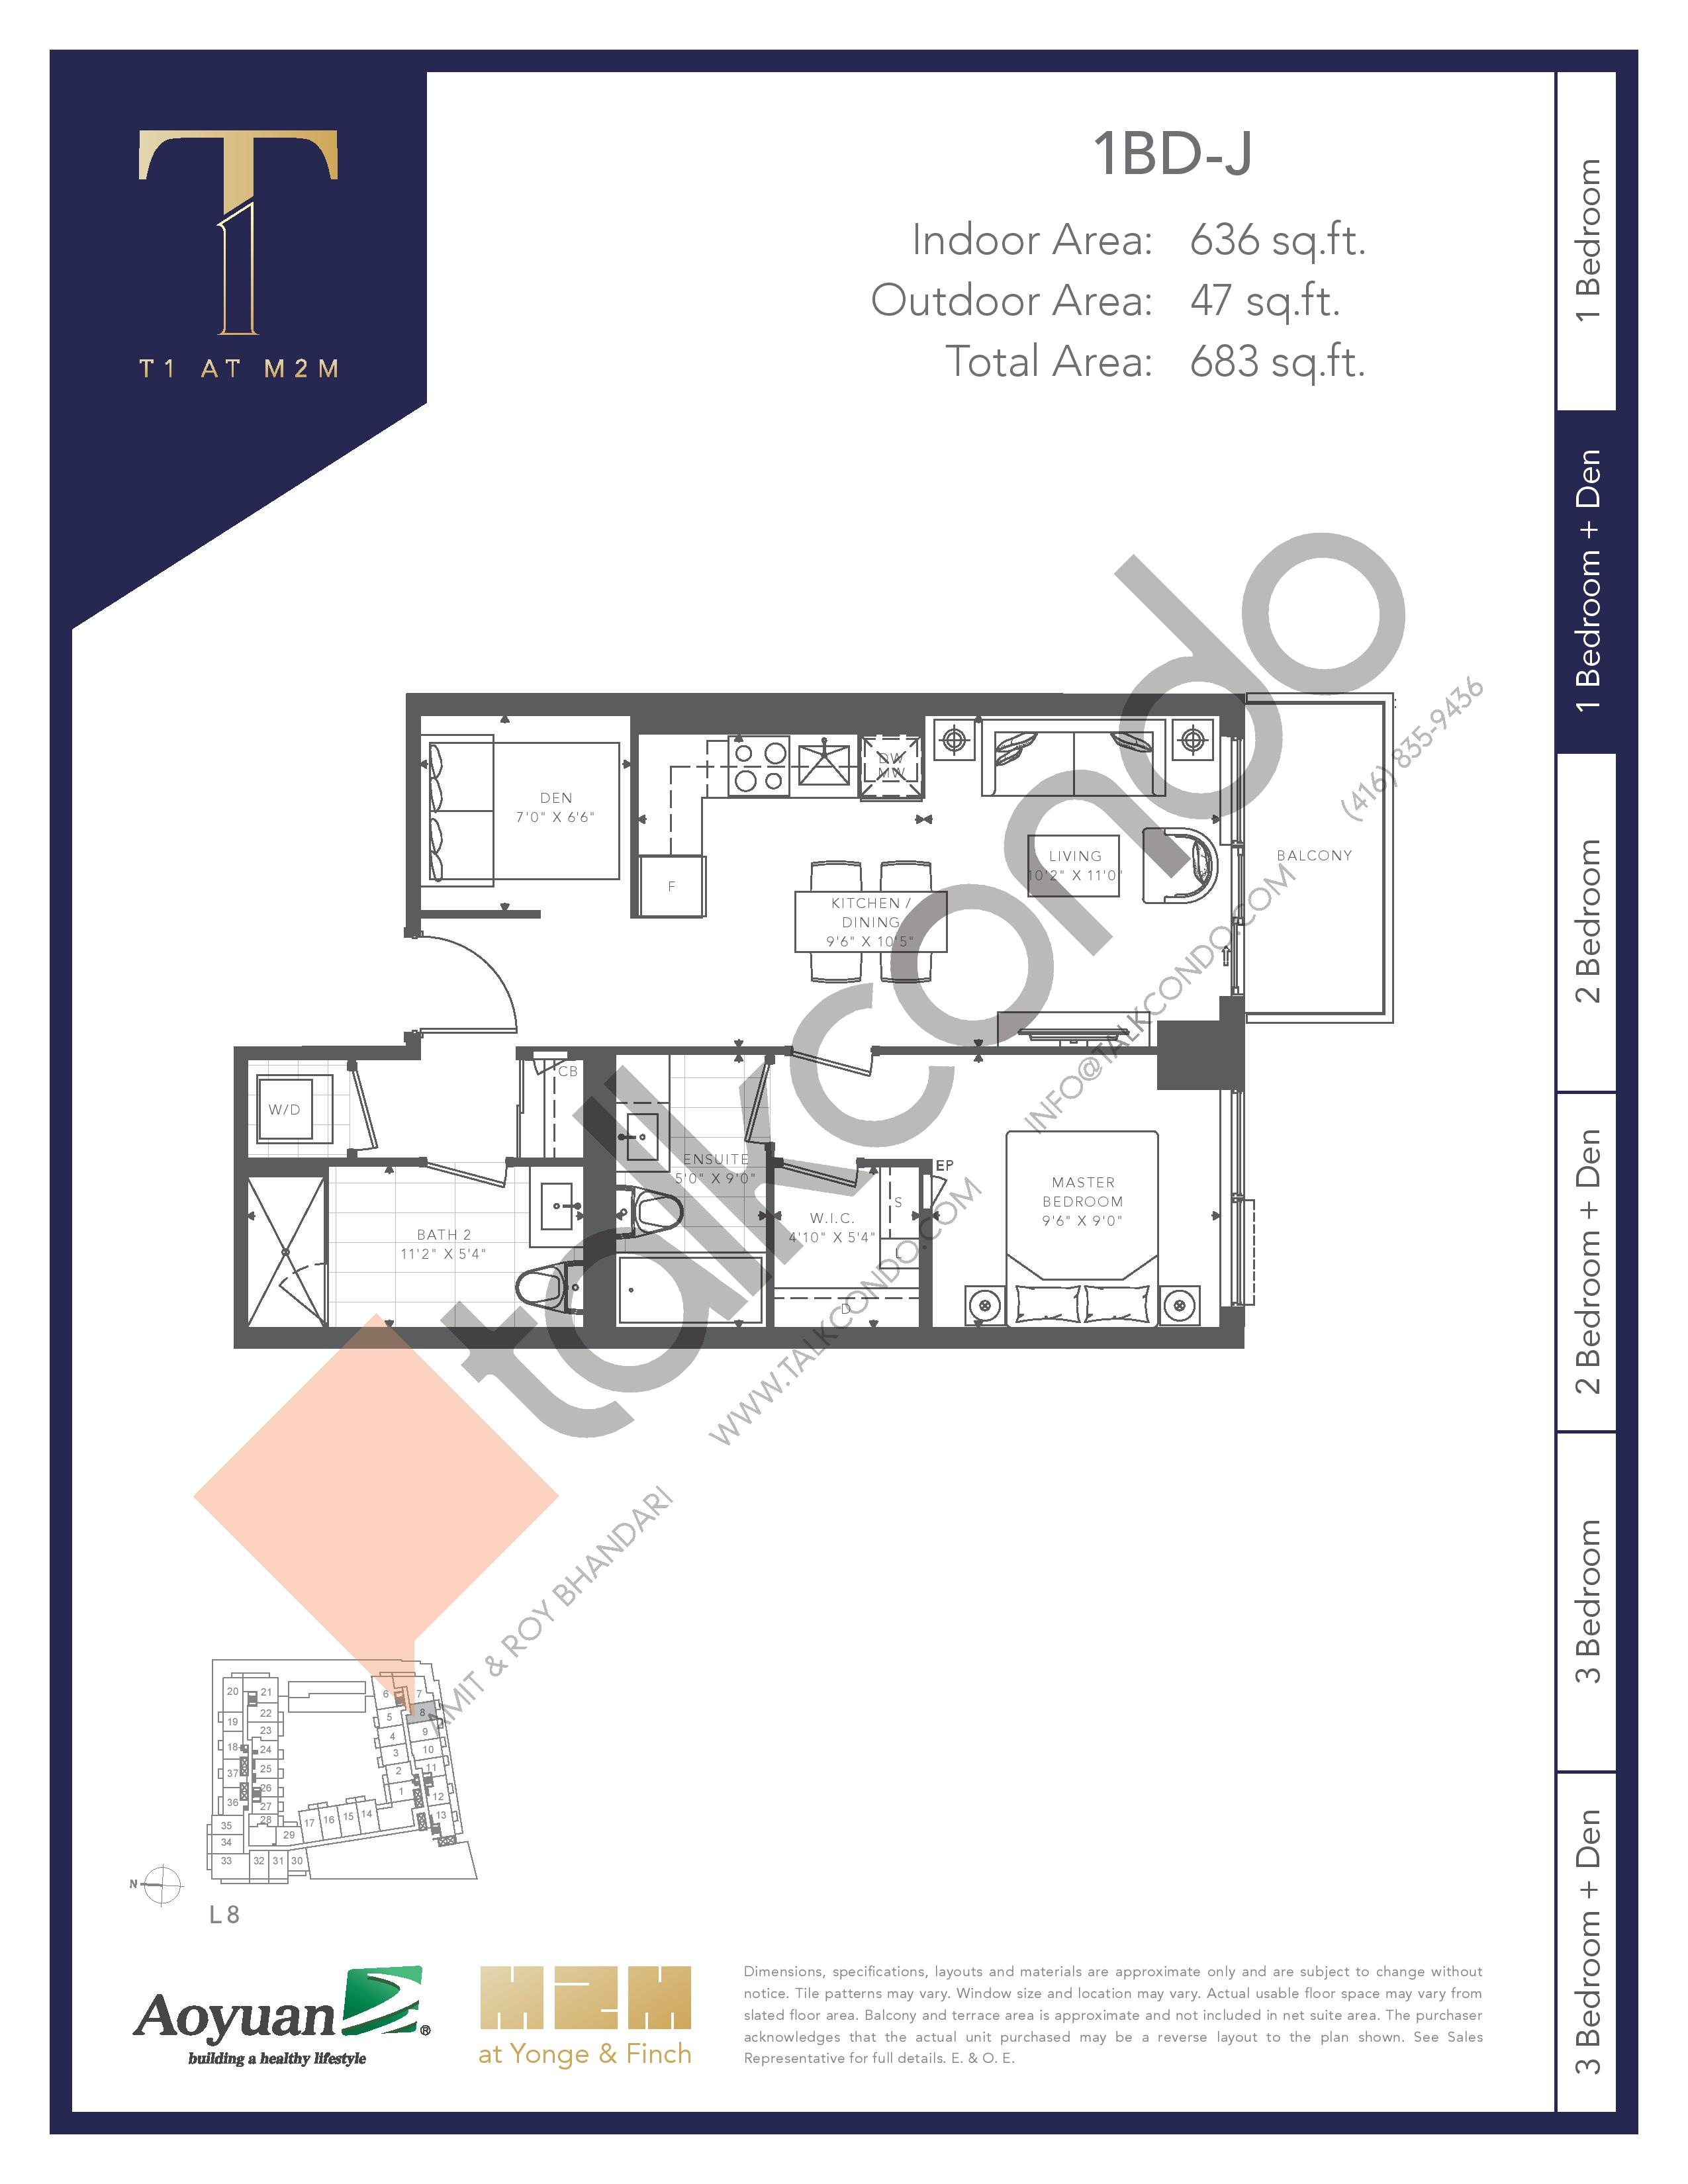 1BD-J Floor Plan at T1 at M2M Condos - 636 sq.ft